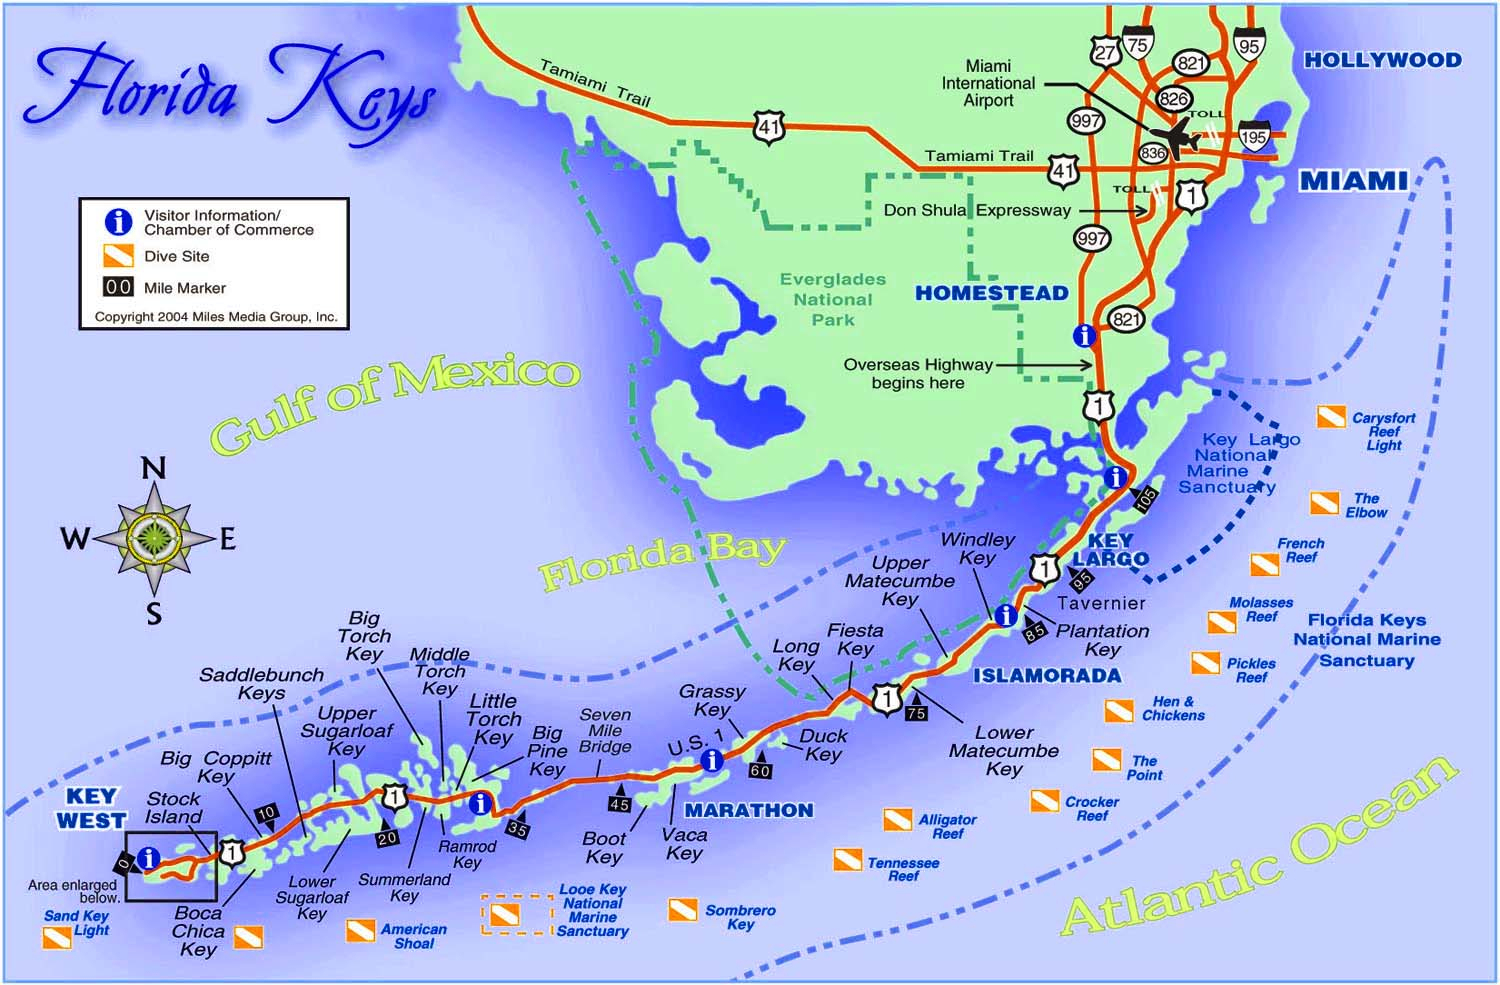 Best Florida Keys Beaches Map And Information - Florida Keys - Florida Keys Highway Map